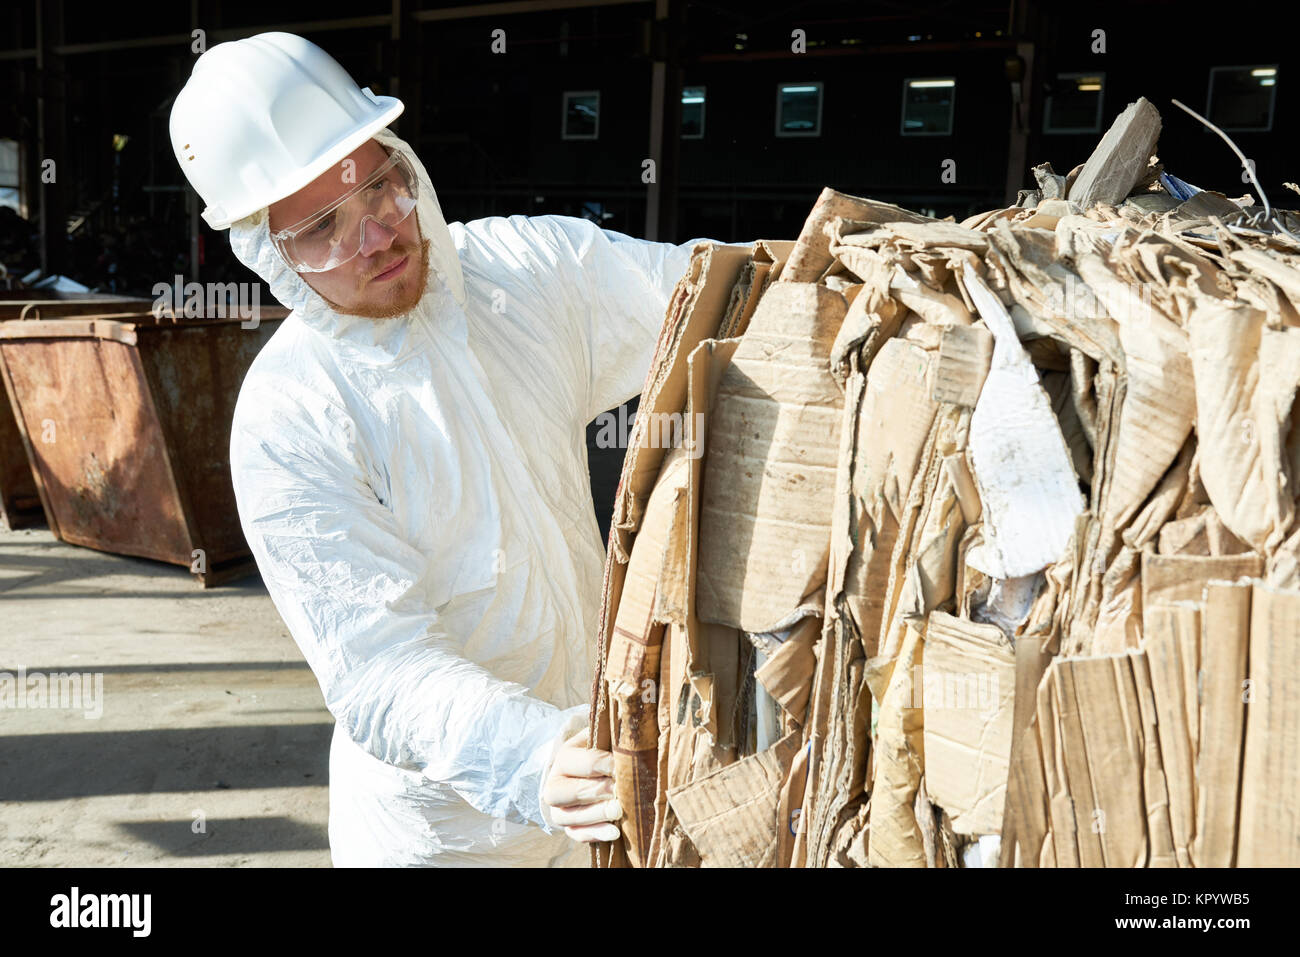 Worker in Hazmat Suit Sorting Cardboard at Recycling Factory Stock Photo